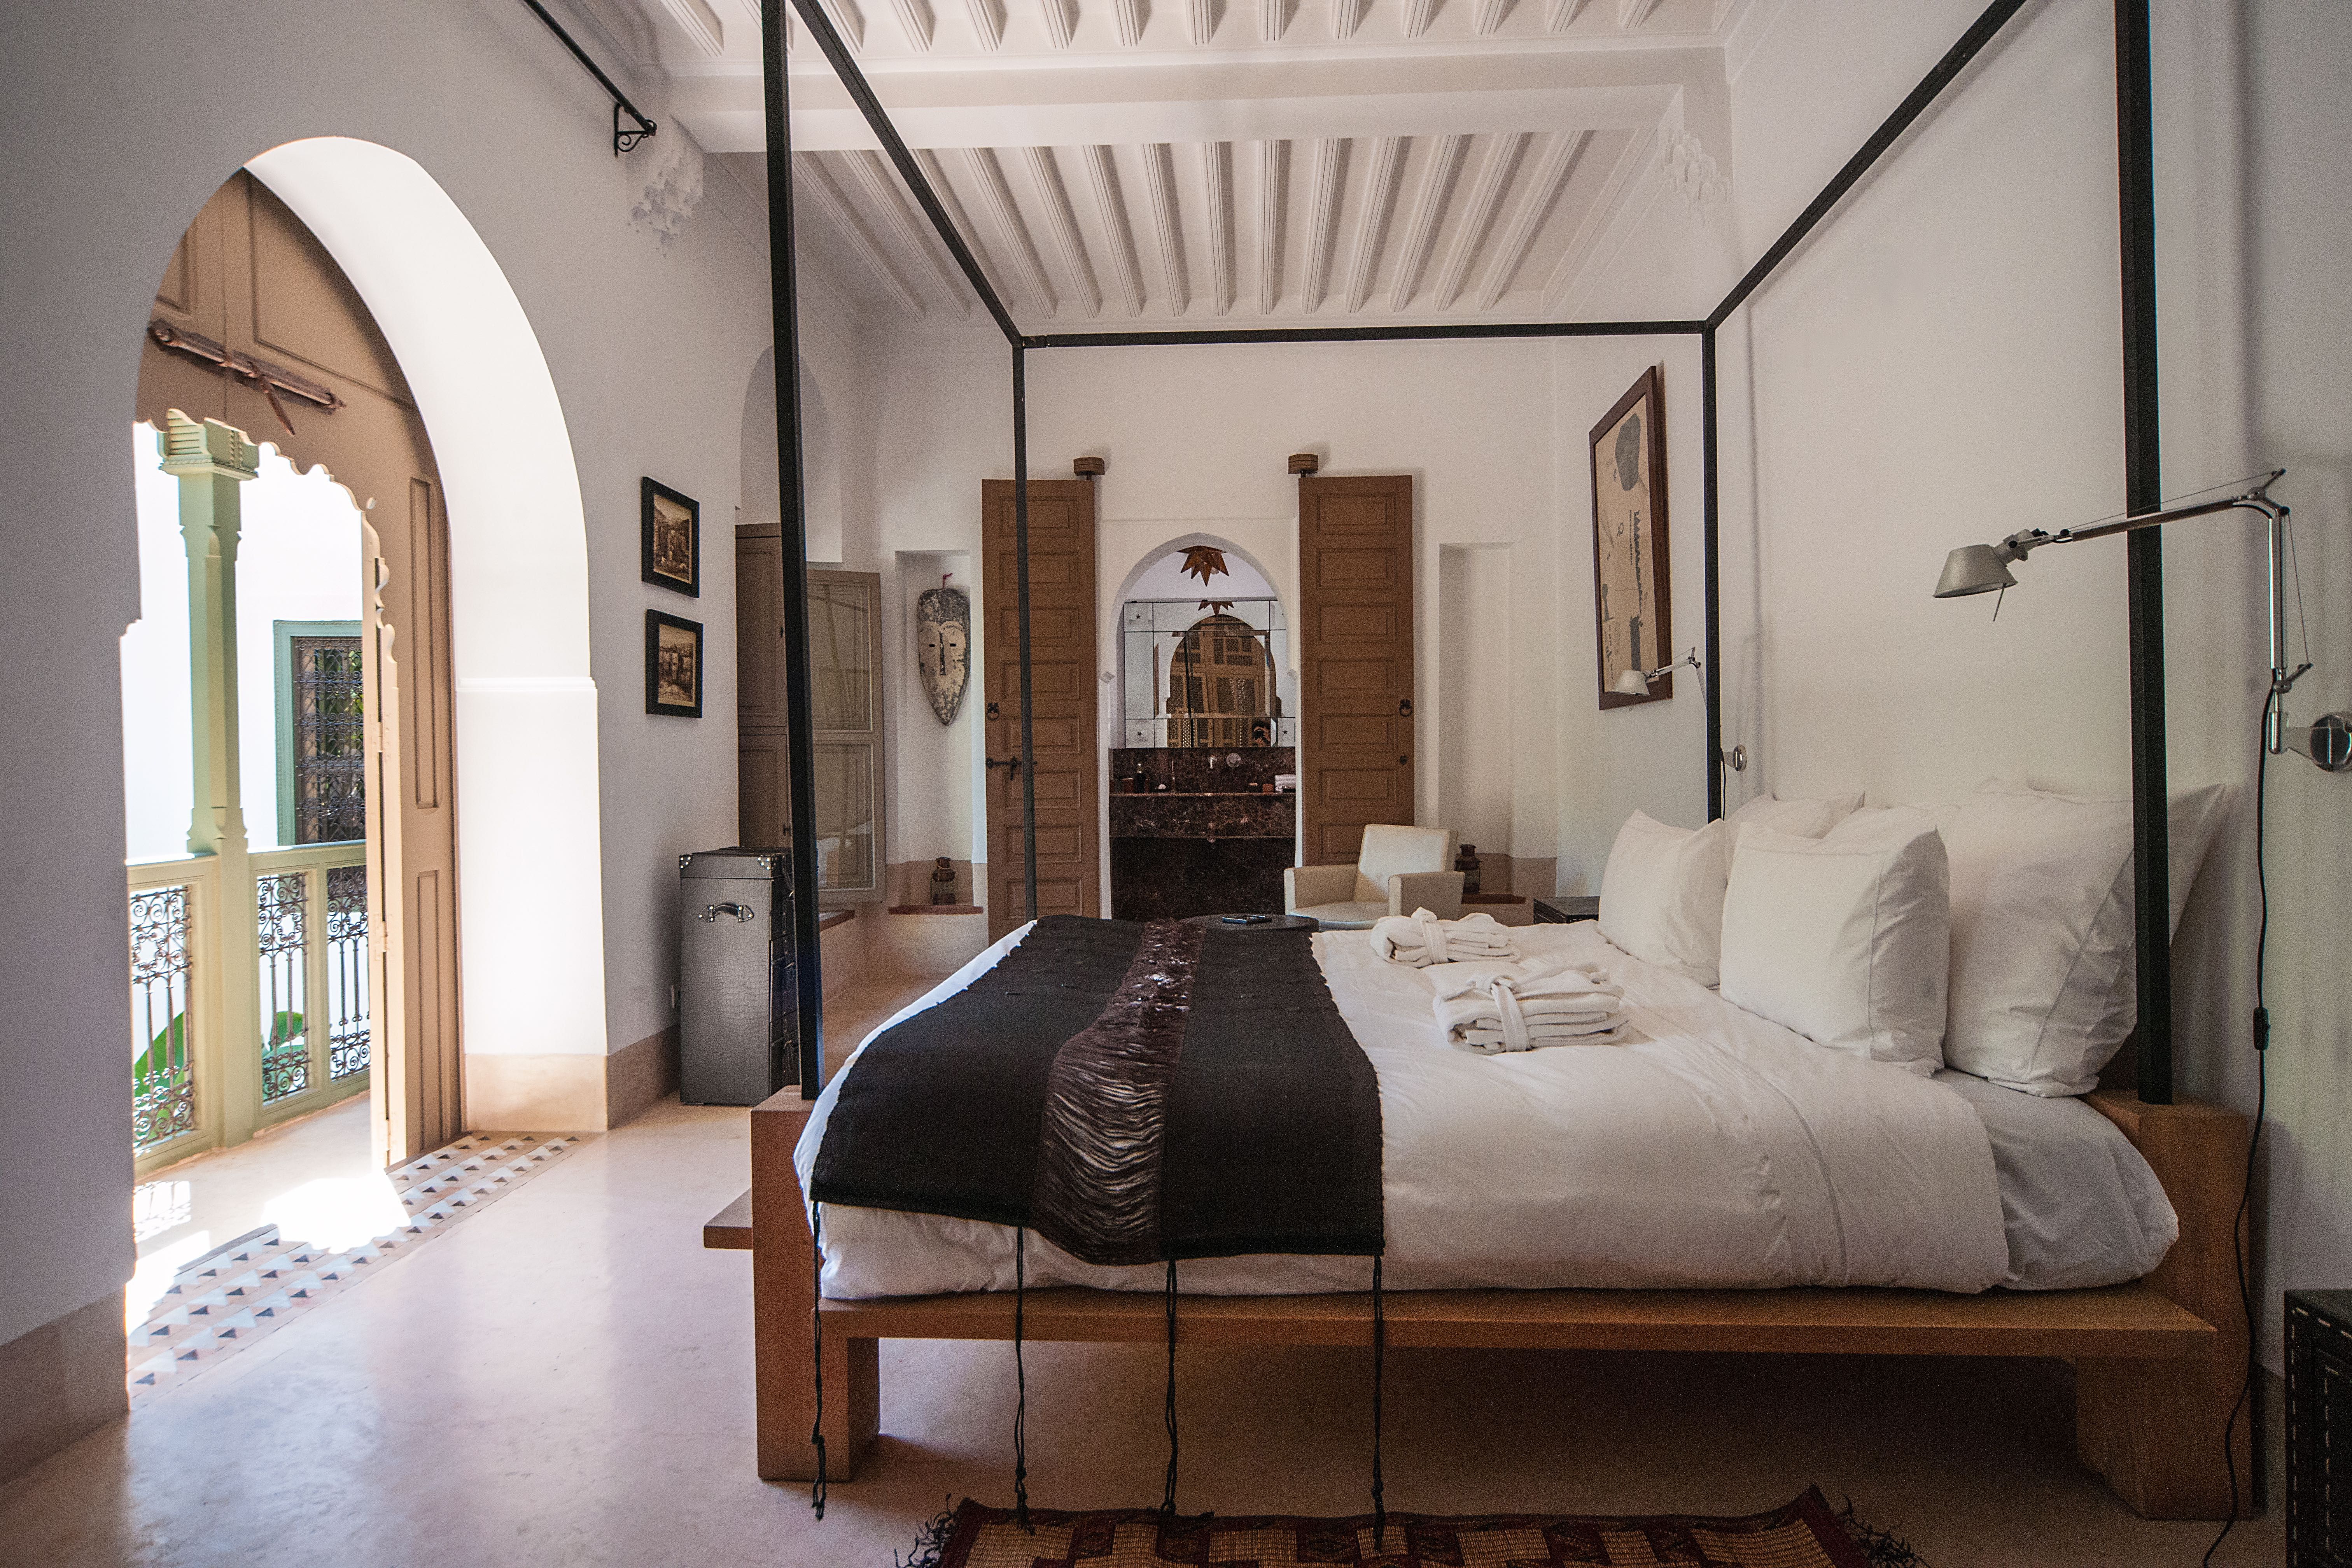 14 Of The Most Magical Riads